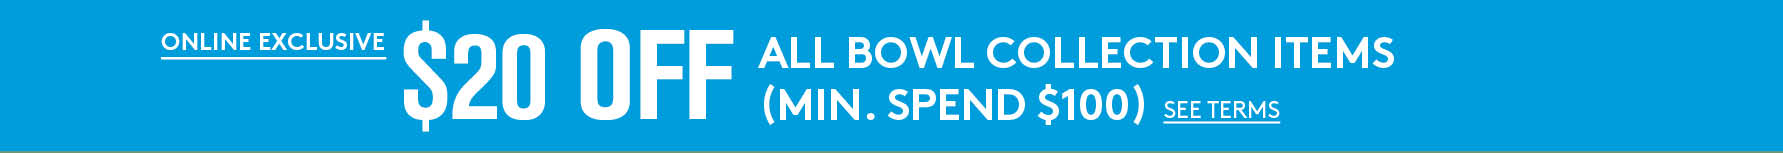 Shop our wellness bowls and get $20 off minimum purchase of $100